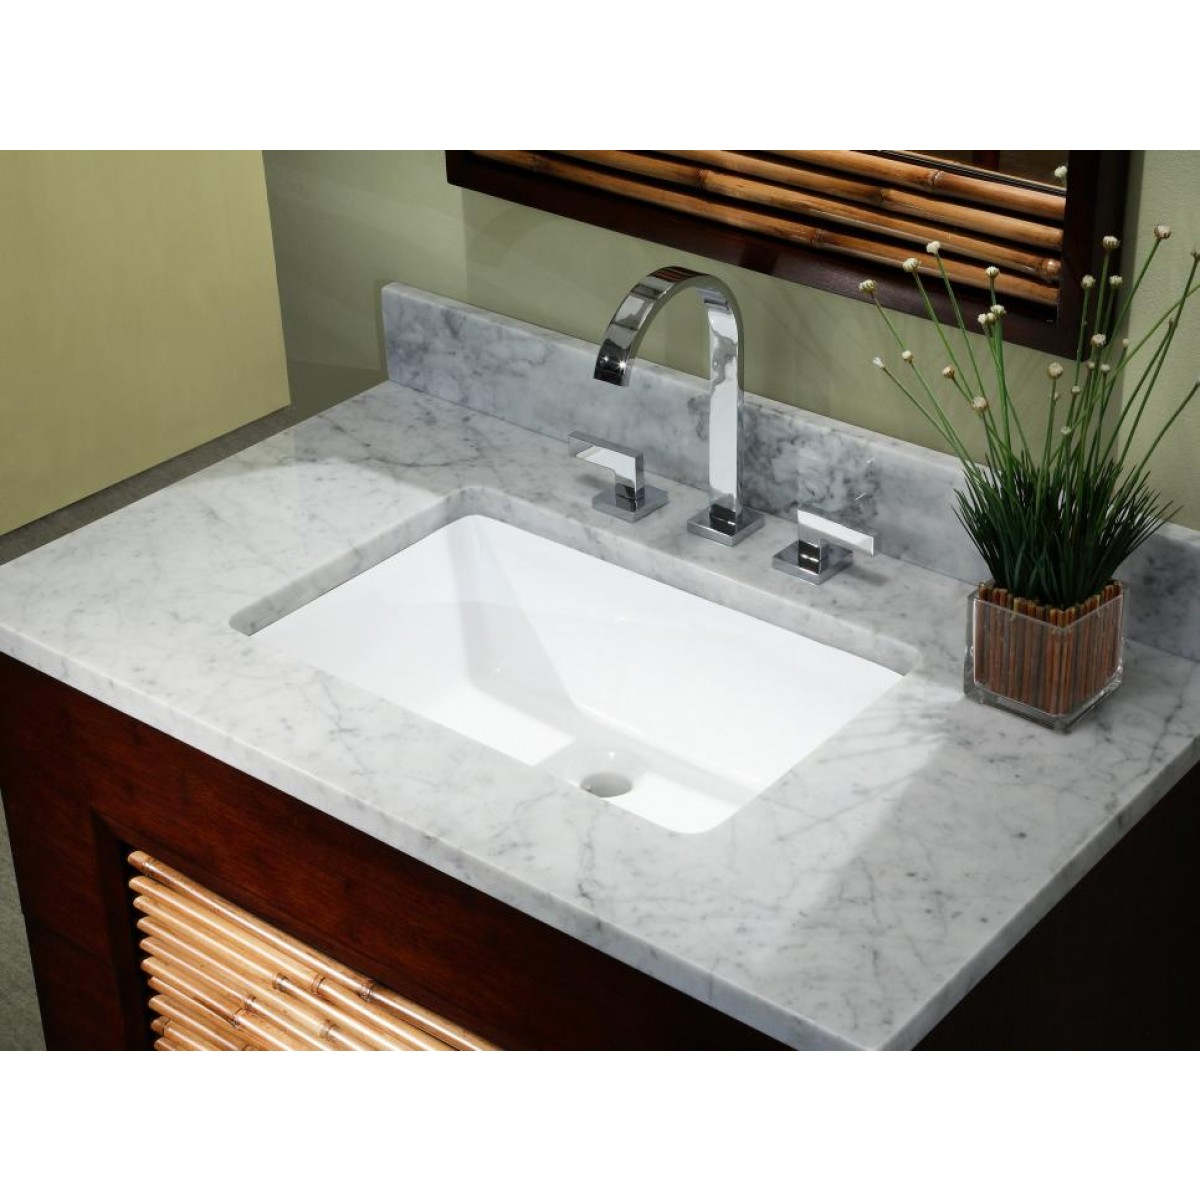 Rectangular White / Biscuit Porcelain Ceramic Vanity